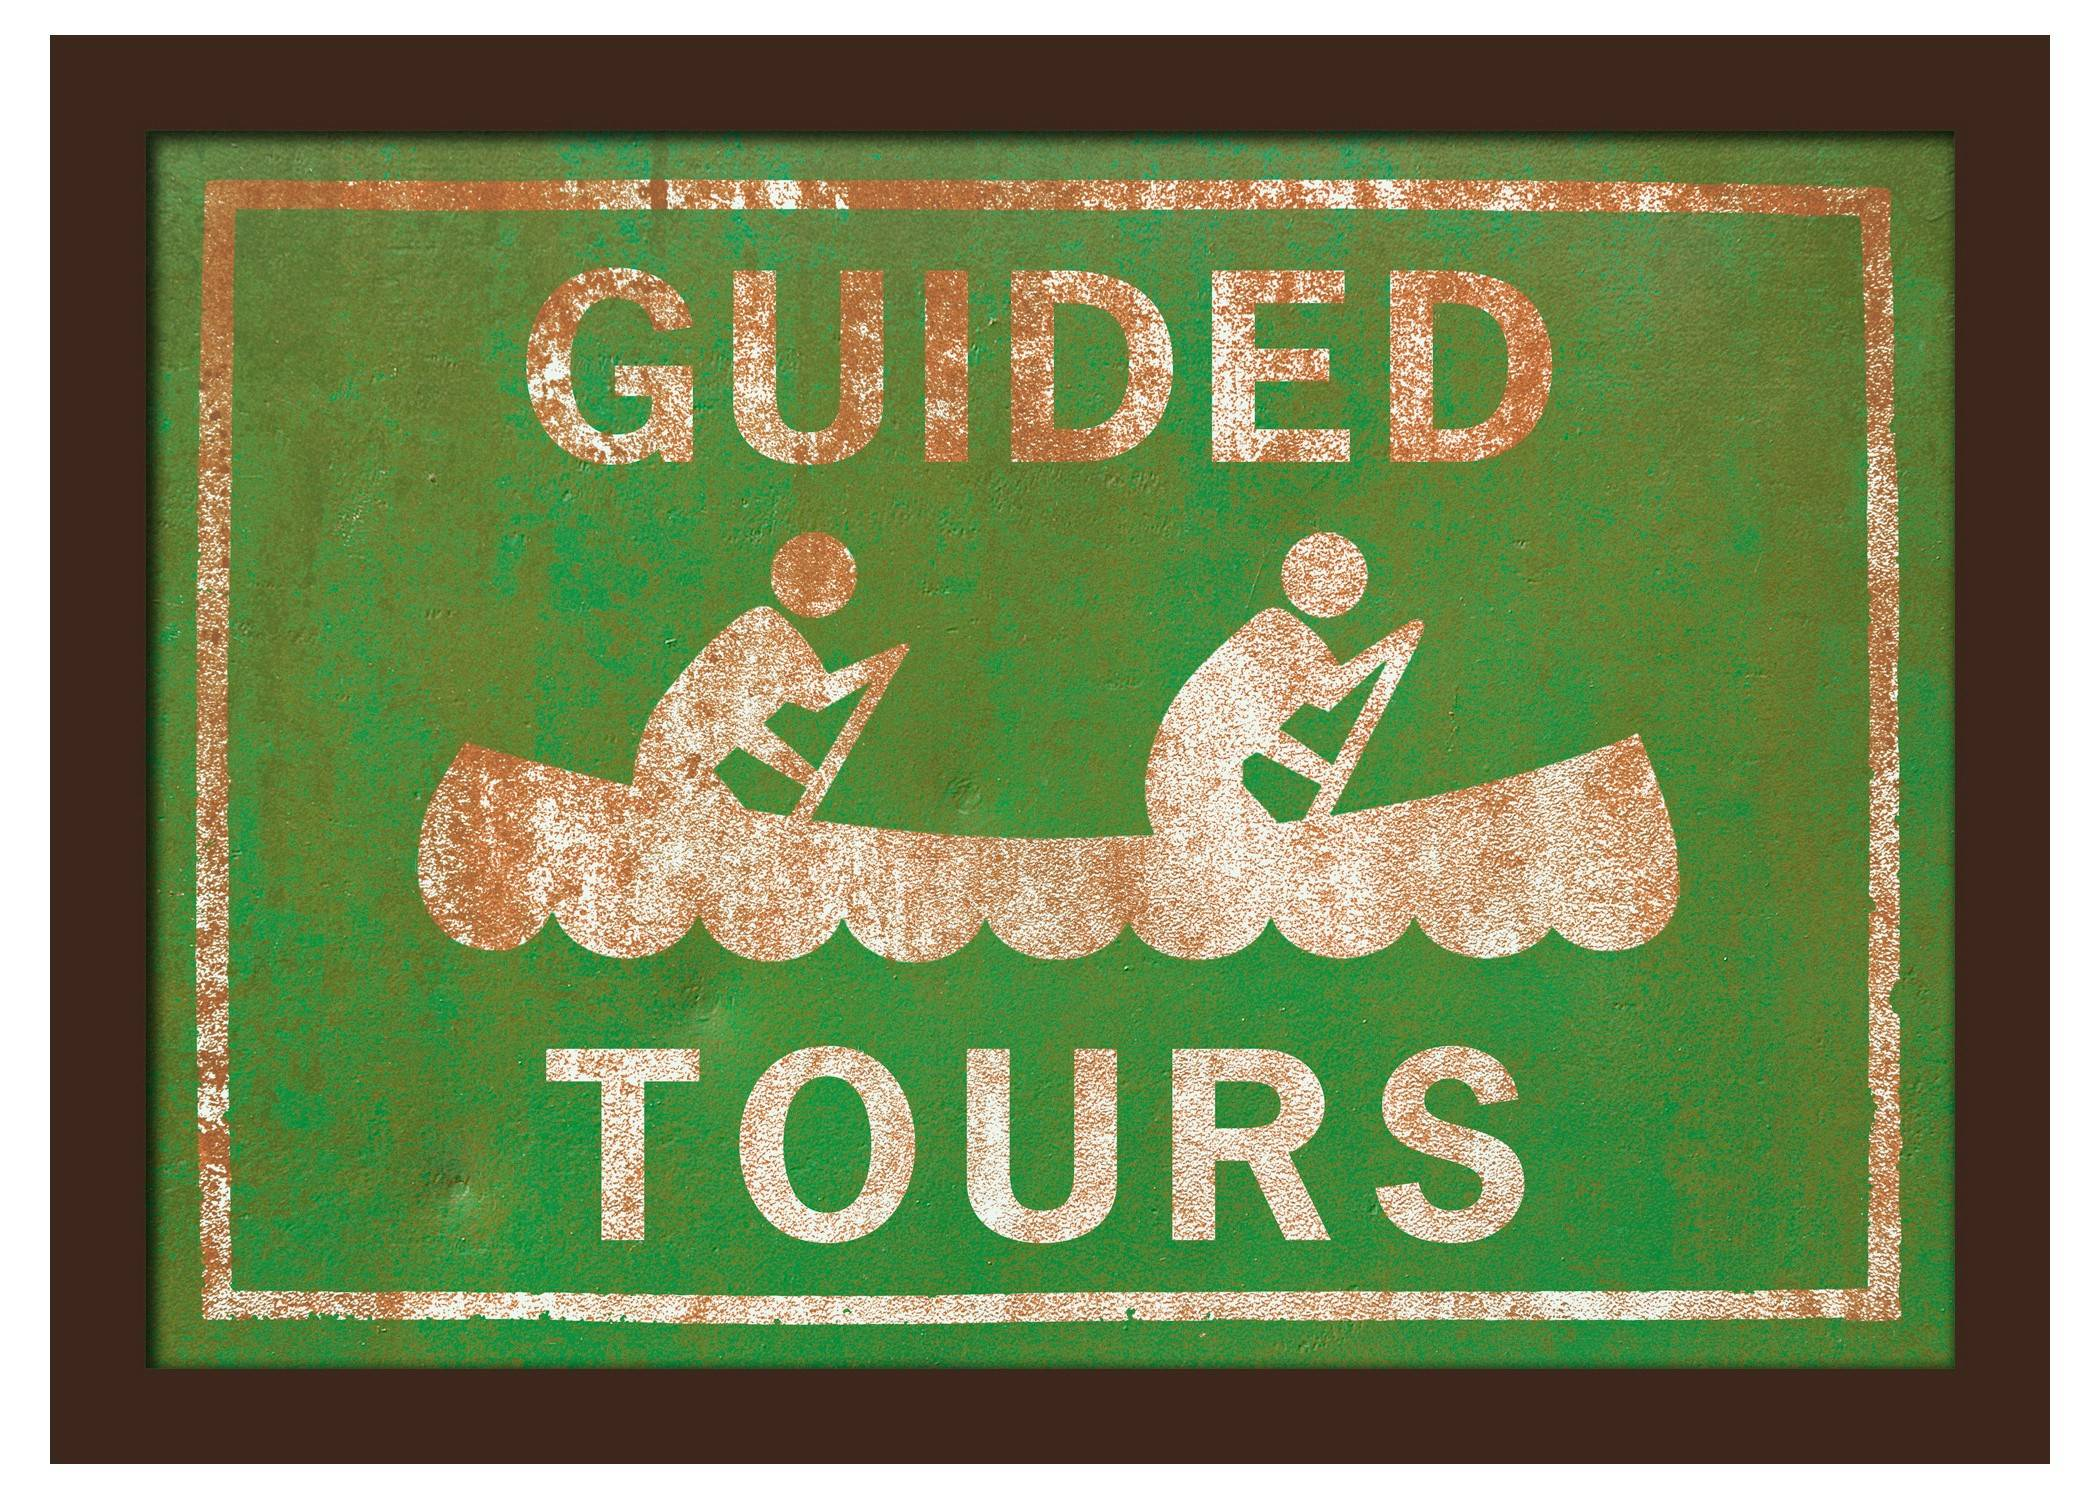 Southern California-based DCR Studio created this giclee print of an retro style Guided Tours canoeing sign, mounted on wood veneer under Plexiglass.